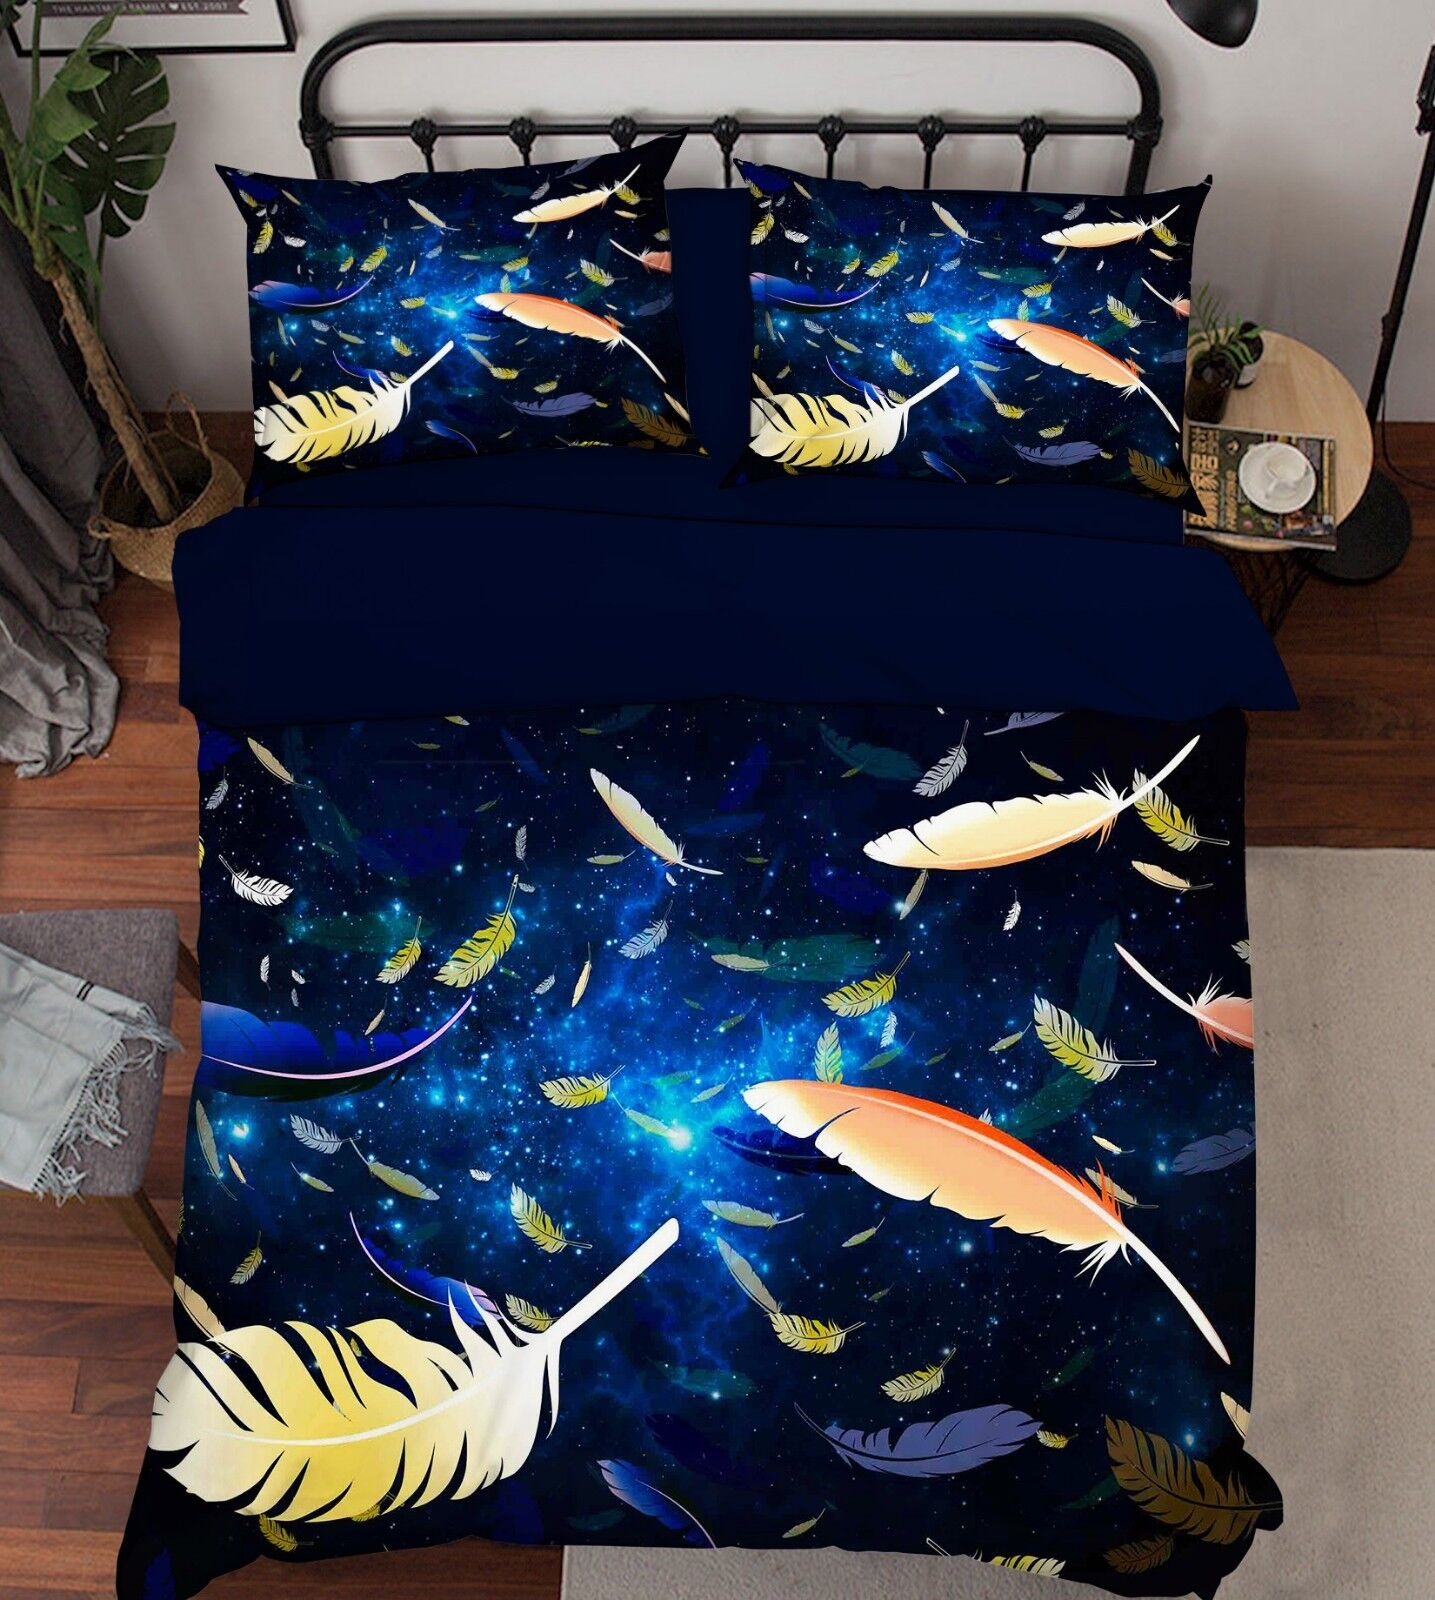 3D Star Feathers 586 Bed Pillowcases Quilt Duvet Cover Set Single King UK Summer